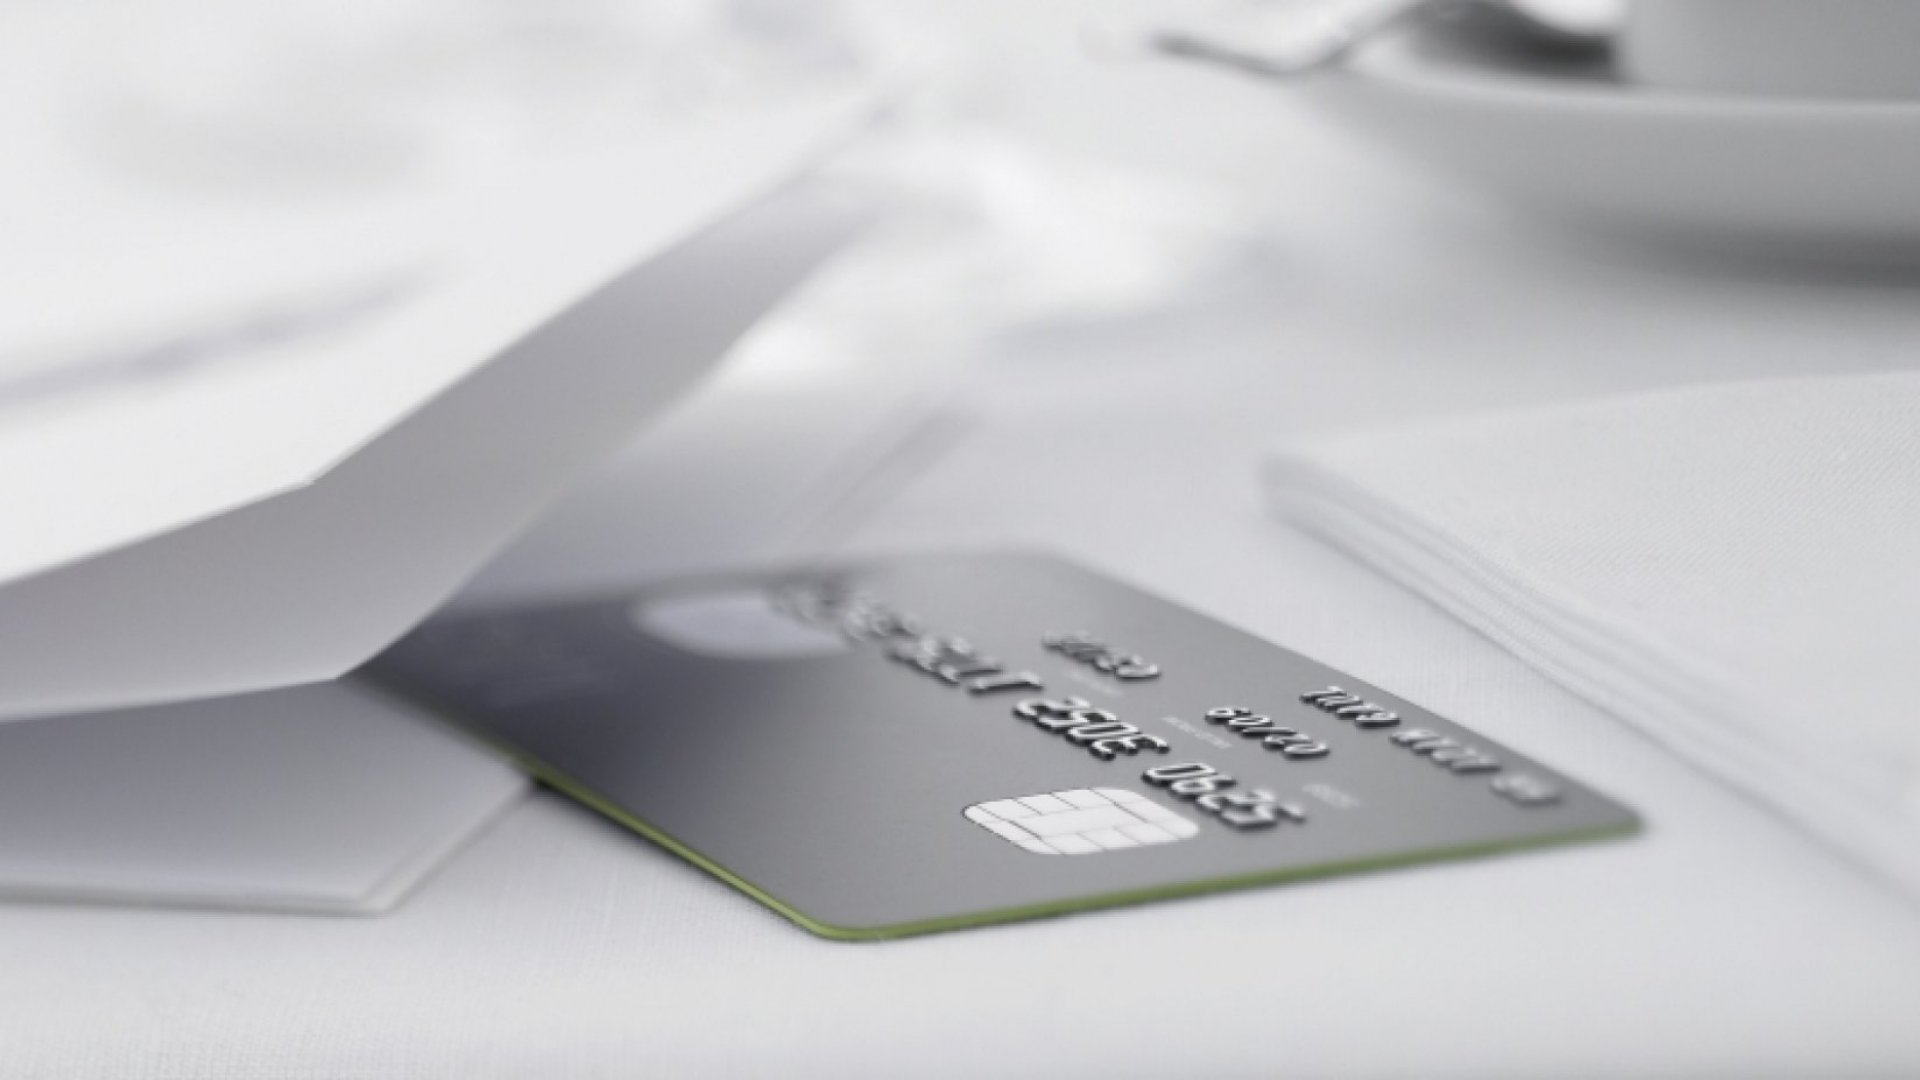 Starting a Business? Here Are 3 Debt Financing Options You Should Consider